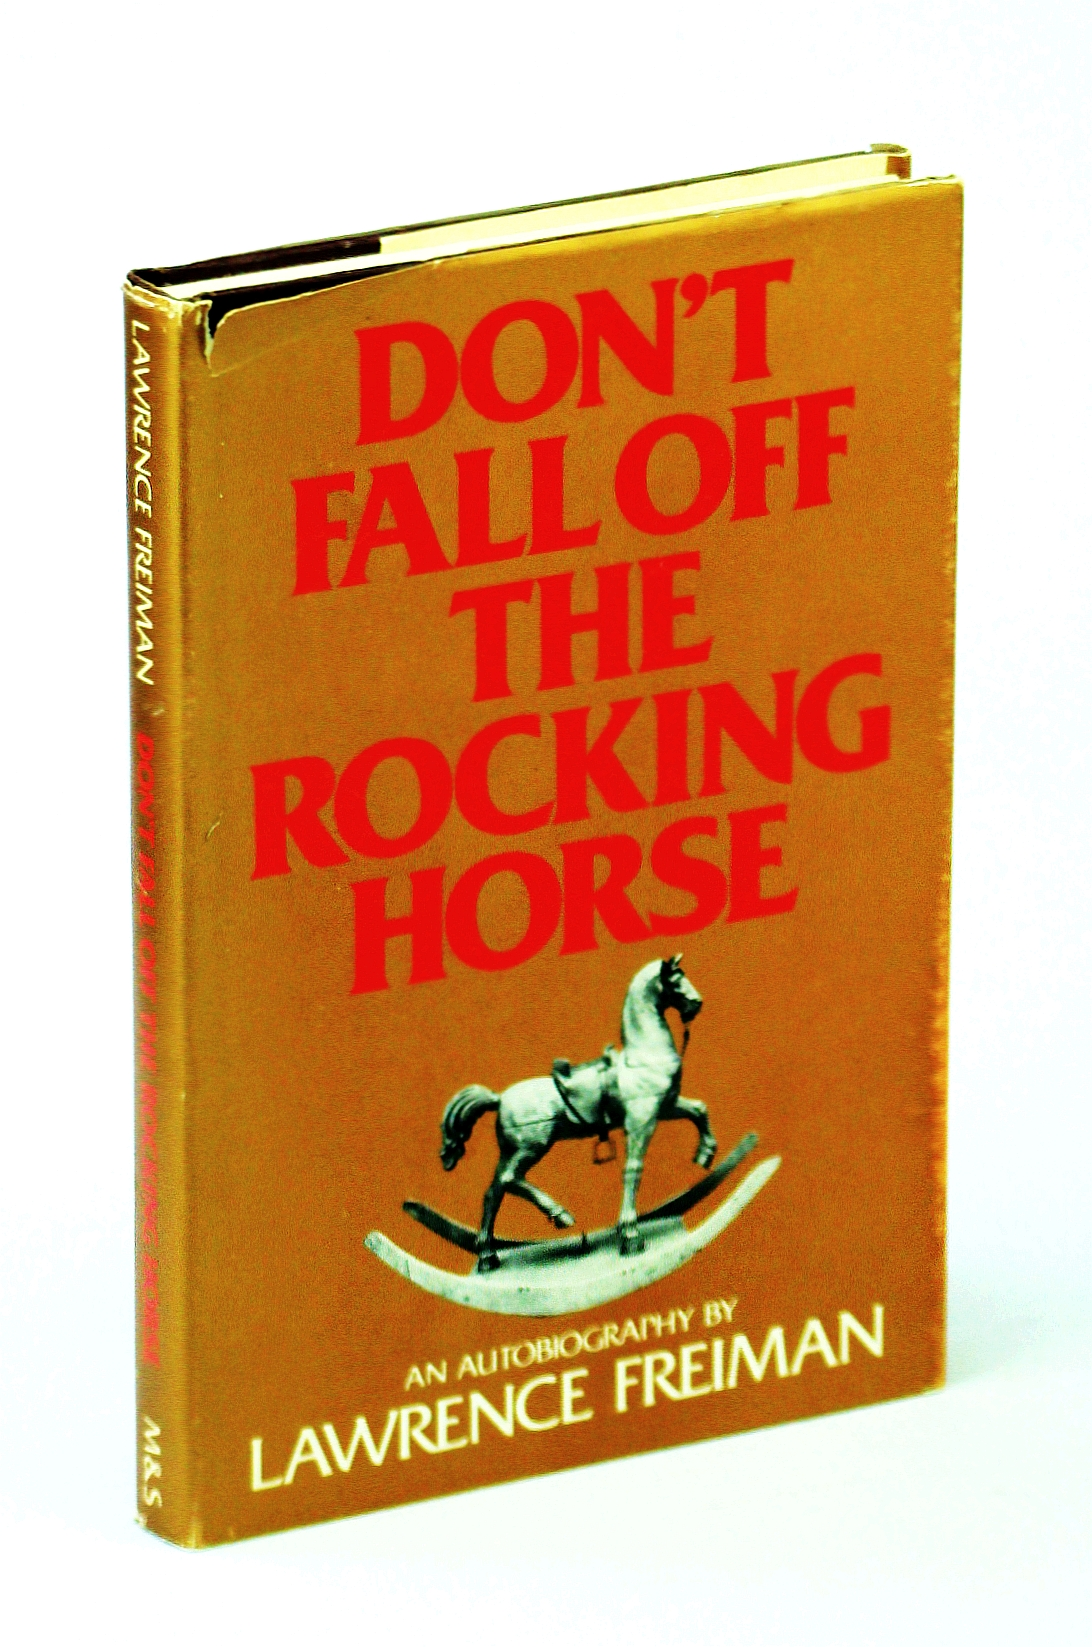 Image for Don't fall off the rocking horse: An autobiography